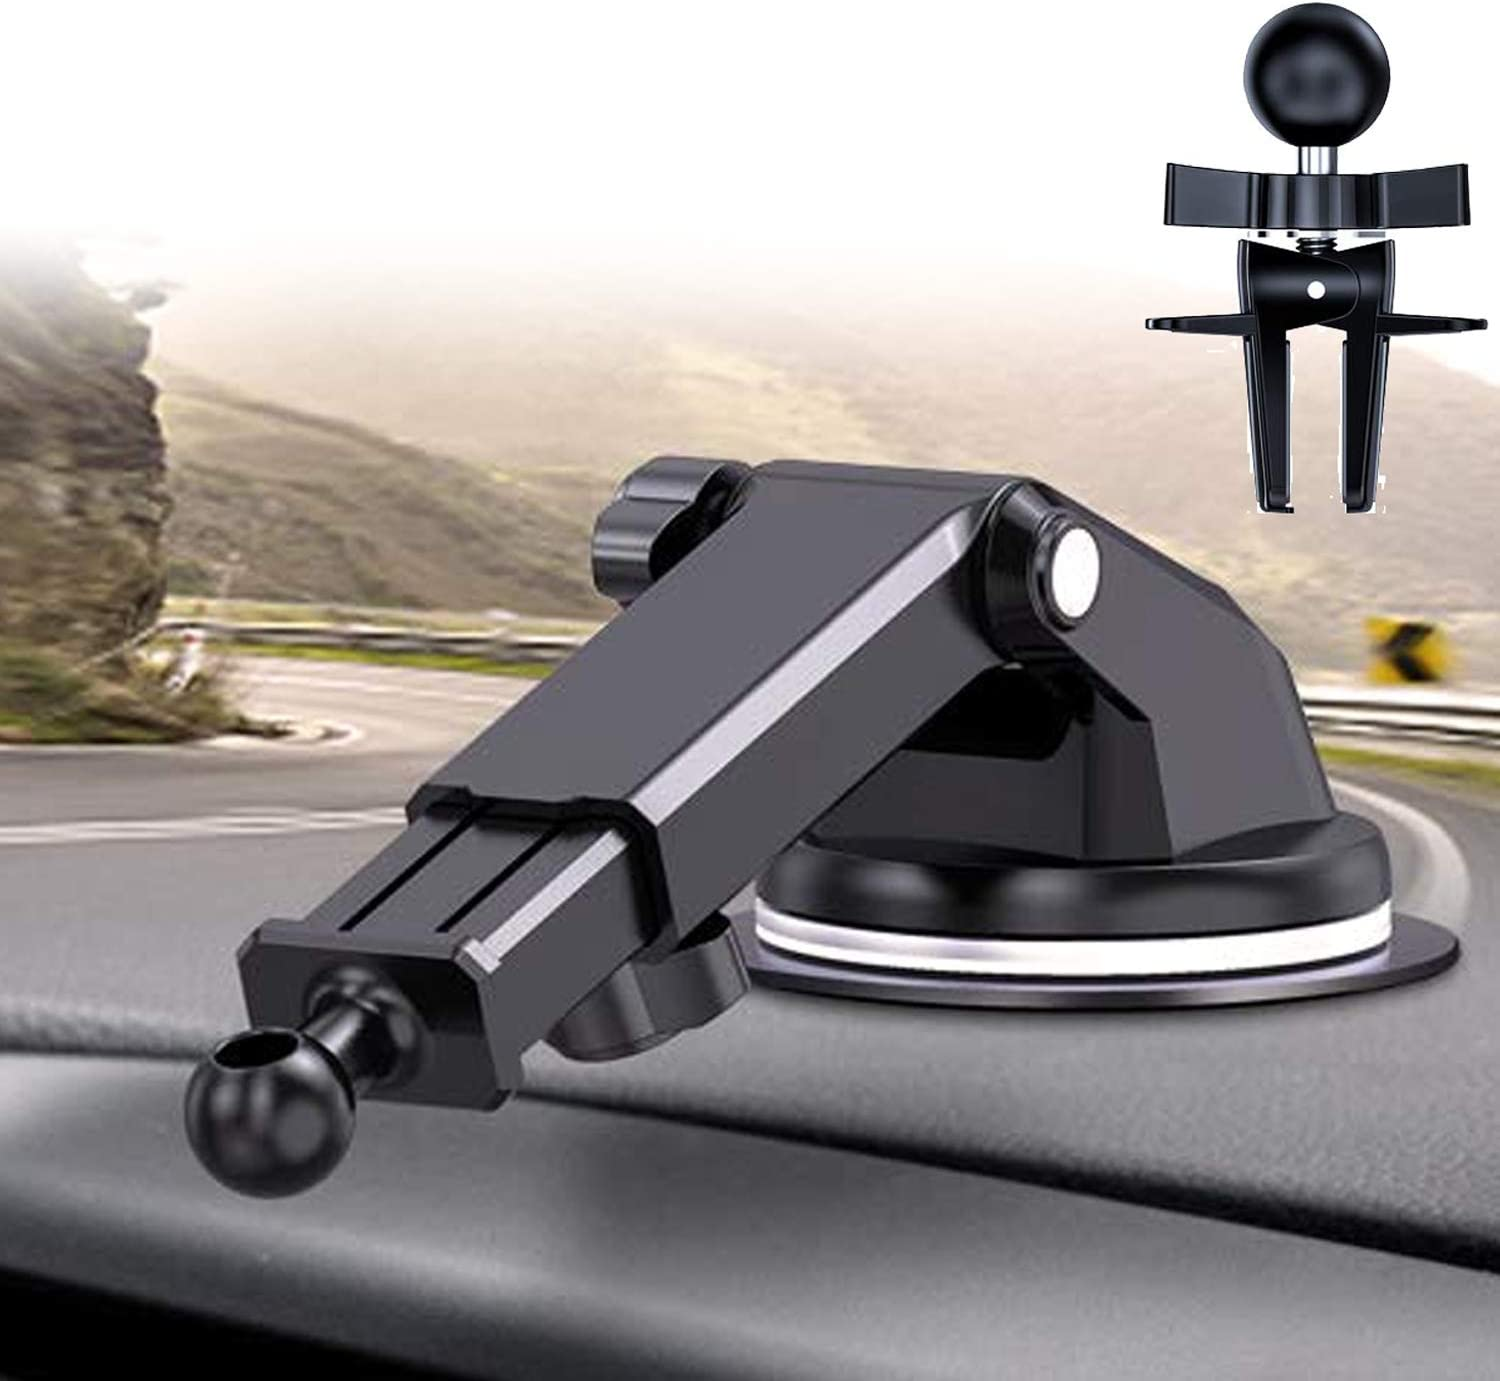 DesertWest Replacement Gel Pad Suction Cup with Adjustable Long Arm for Car Phone Mount Car Phone Holder /& Air Vent Clip